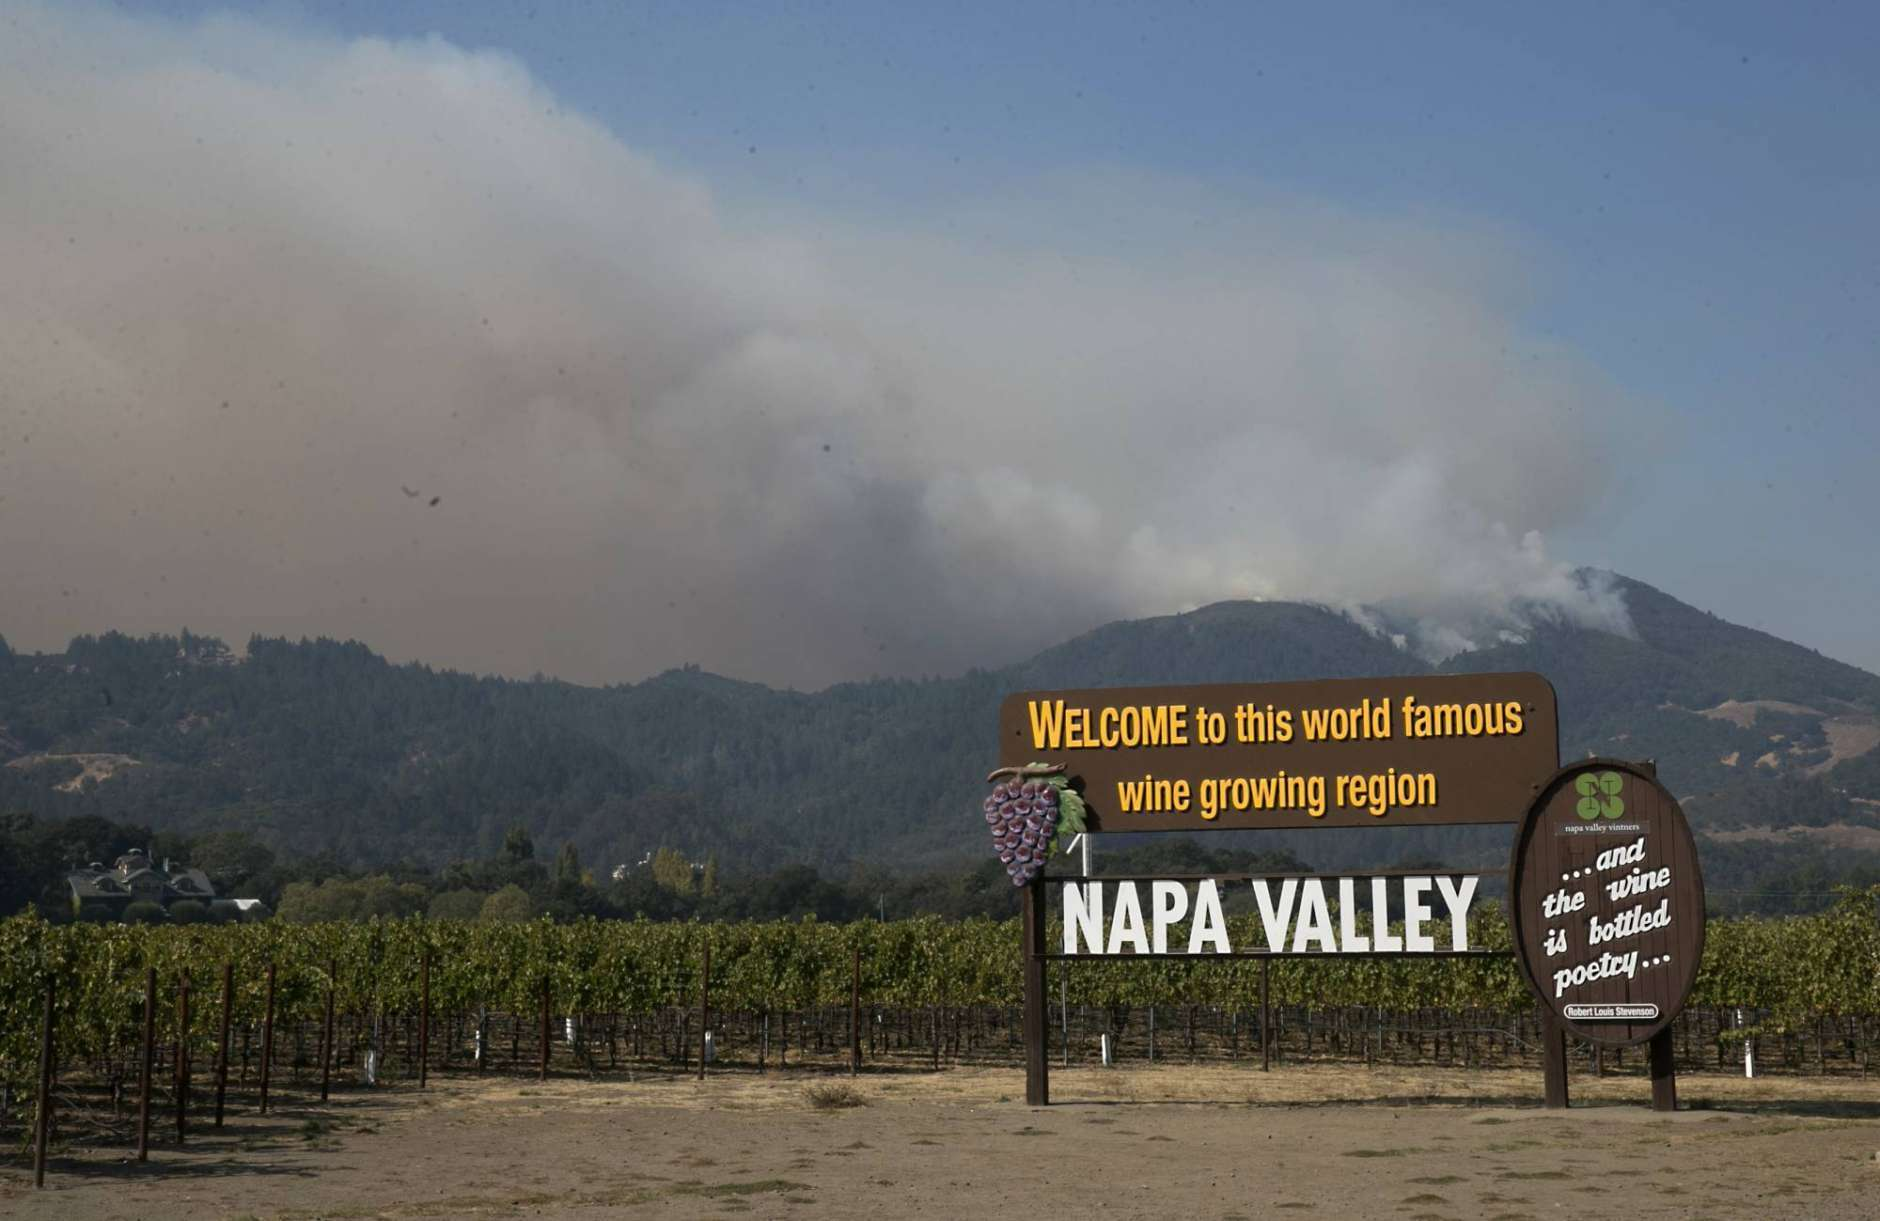 Smoke billows from a fire burning in the mountains over Napa Valley, Friday, Oct. 13, 2017, in Oakville, Calif. Firefighters gained some ground on a blaze burning in the heart of California's wine country but face another tough day ahead with low humidity and high winds expected to return. (AP Photo/Rich Pedroncelli)